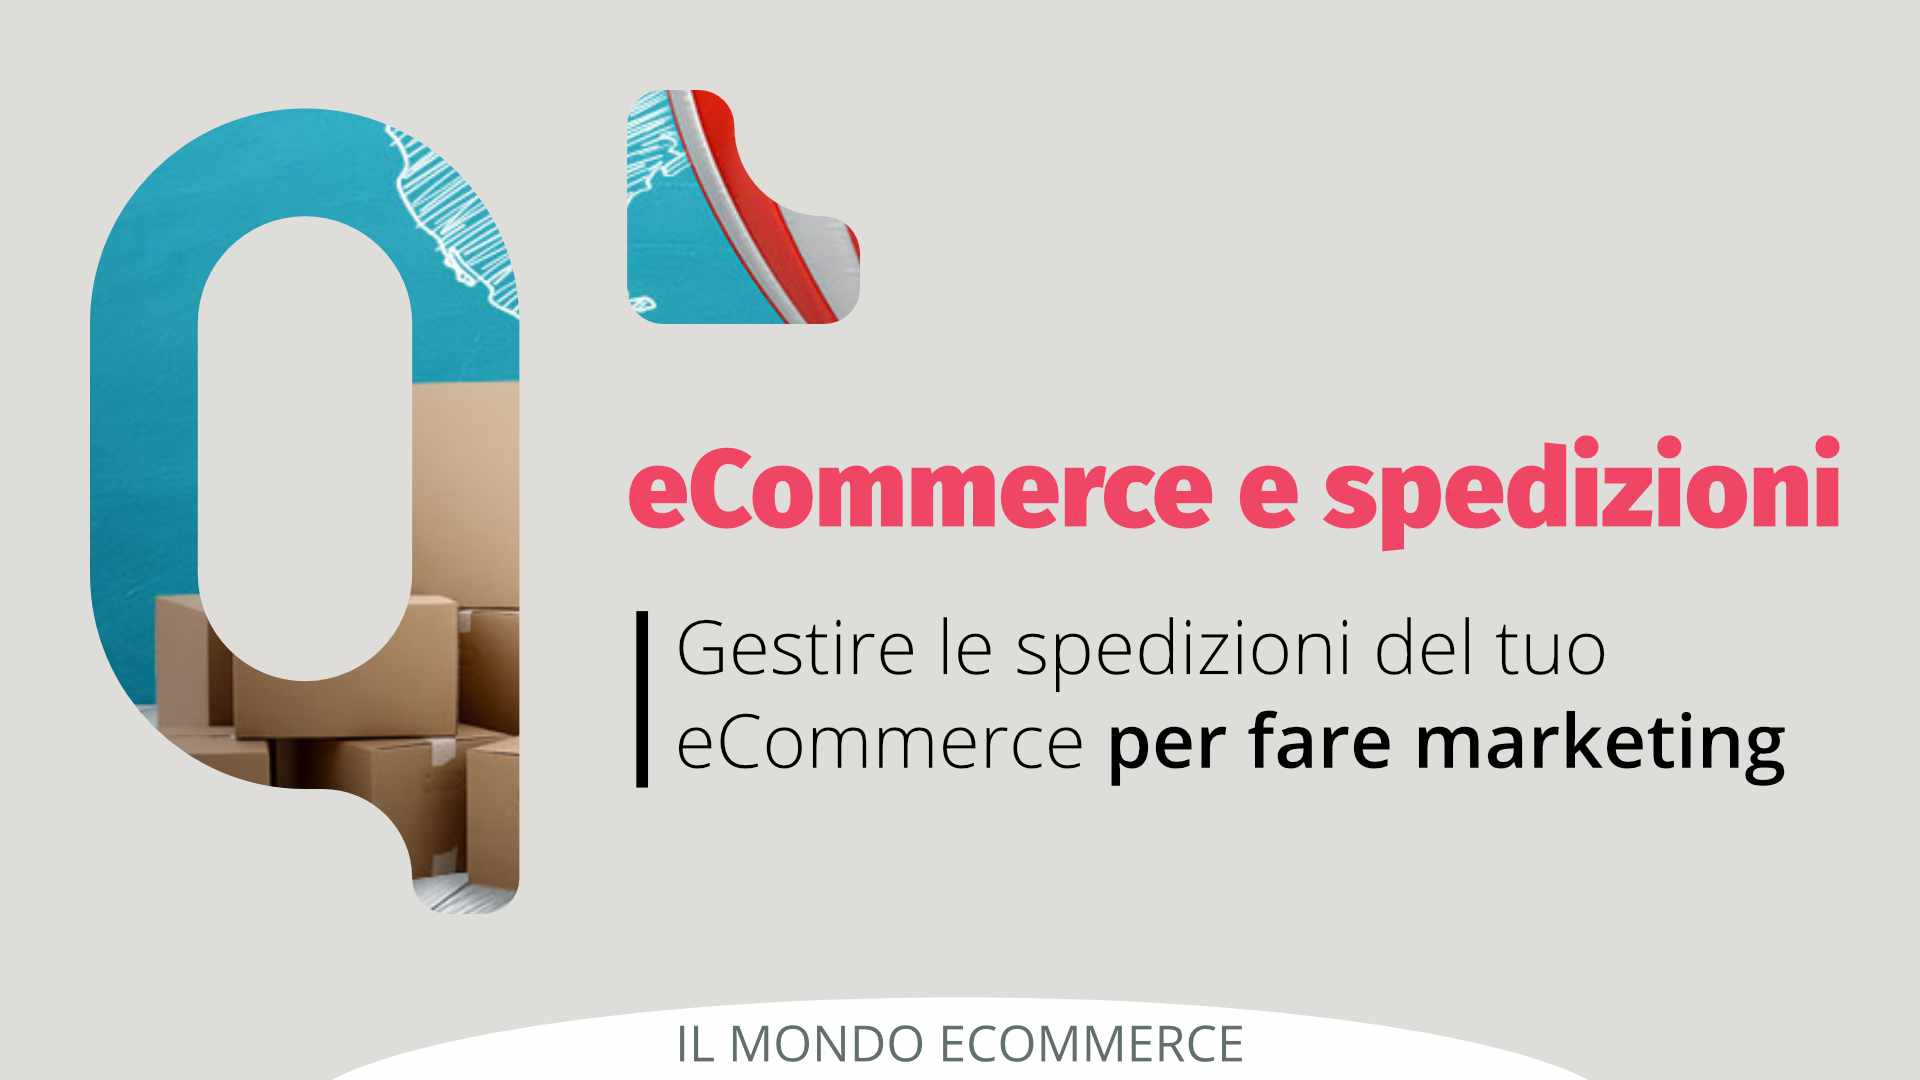 Gestire le spedizioni del tuo eCommerce per fare marketing